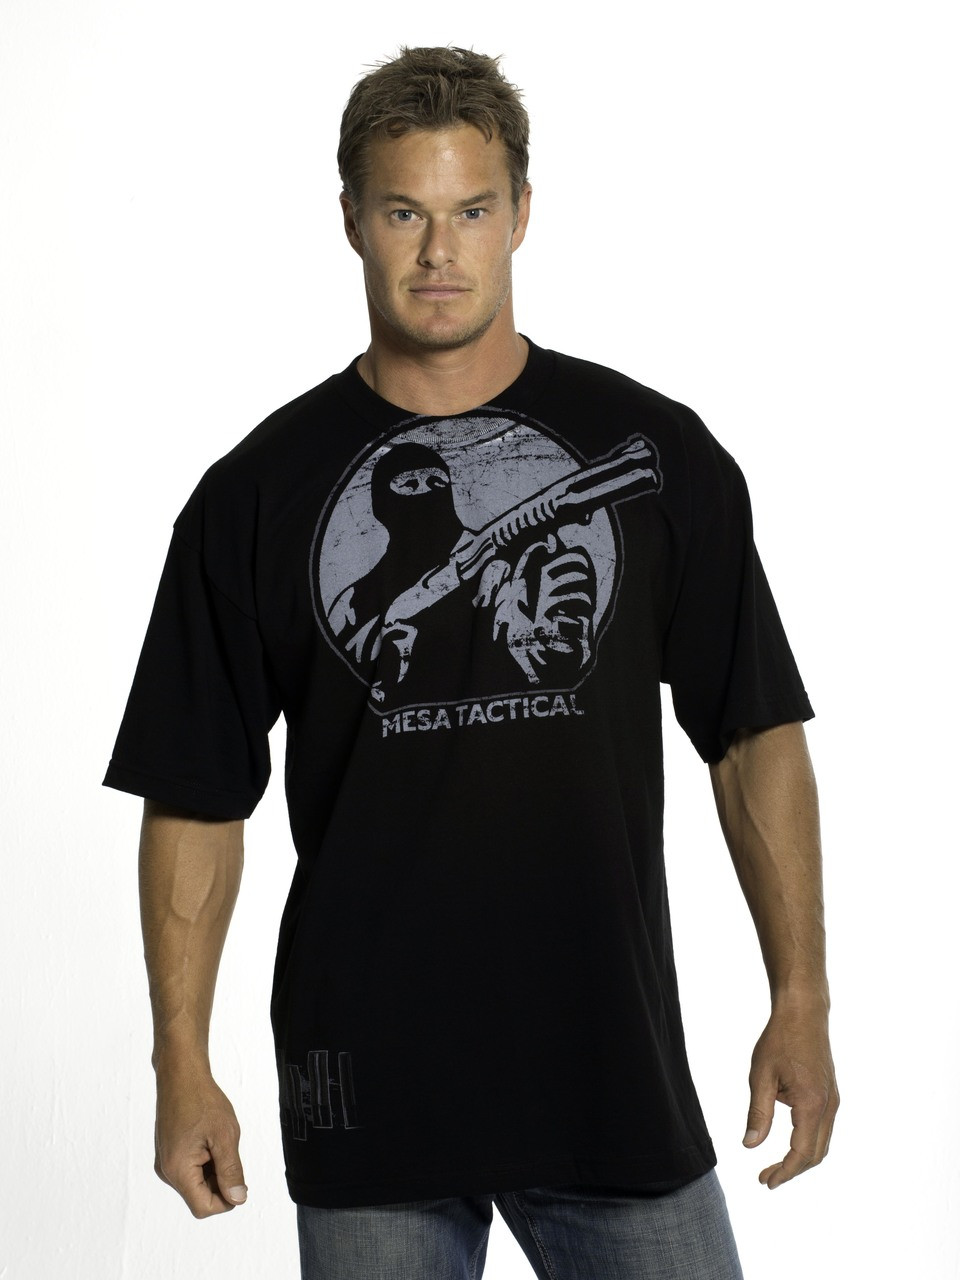 Mesa Tactical Logo & Shells Short Sleeved Tee, Large, White On Black